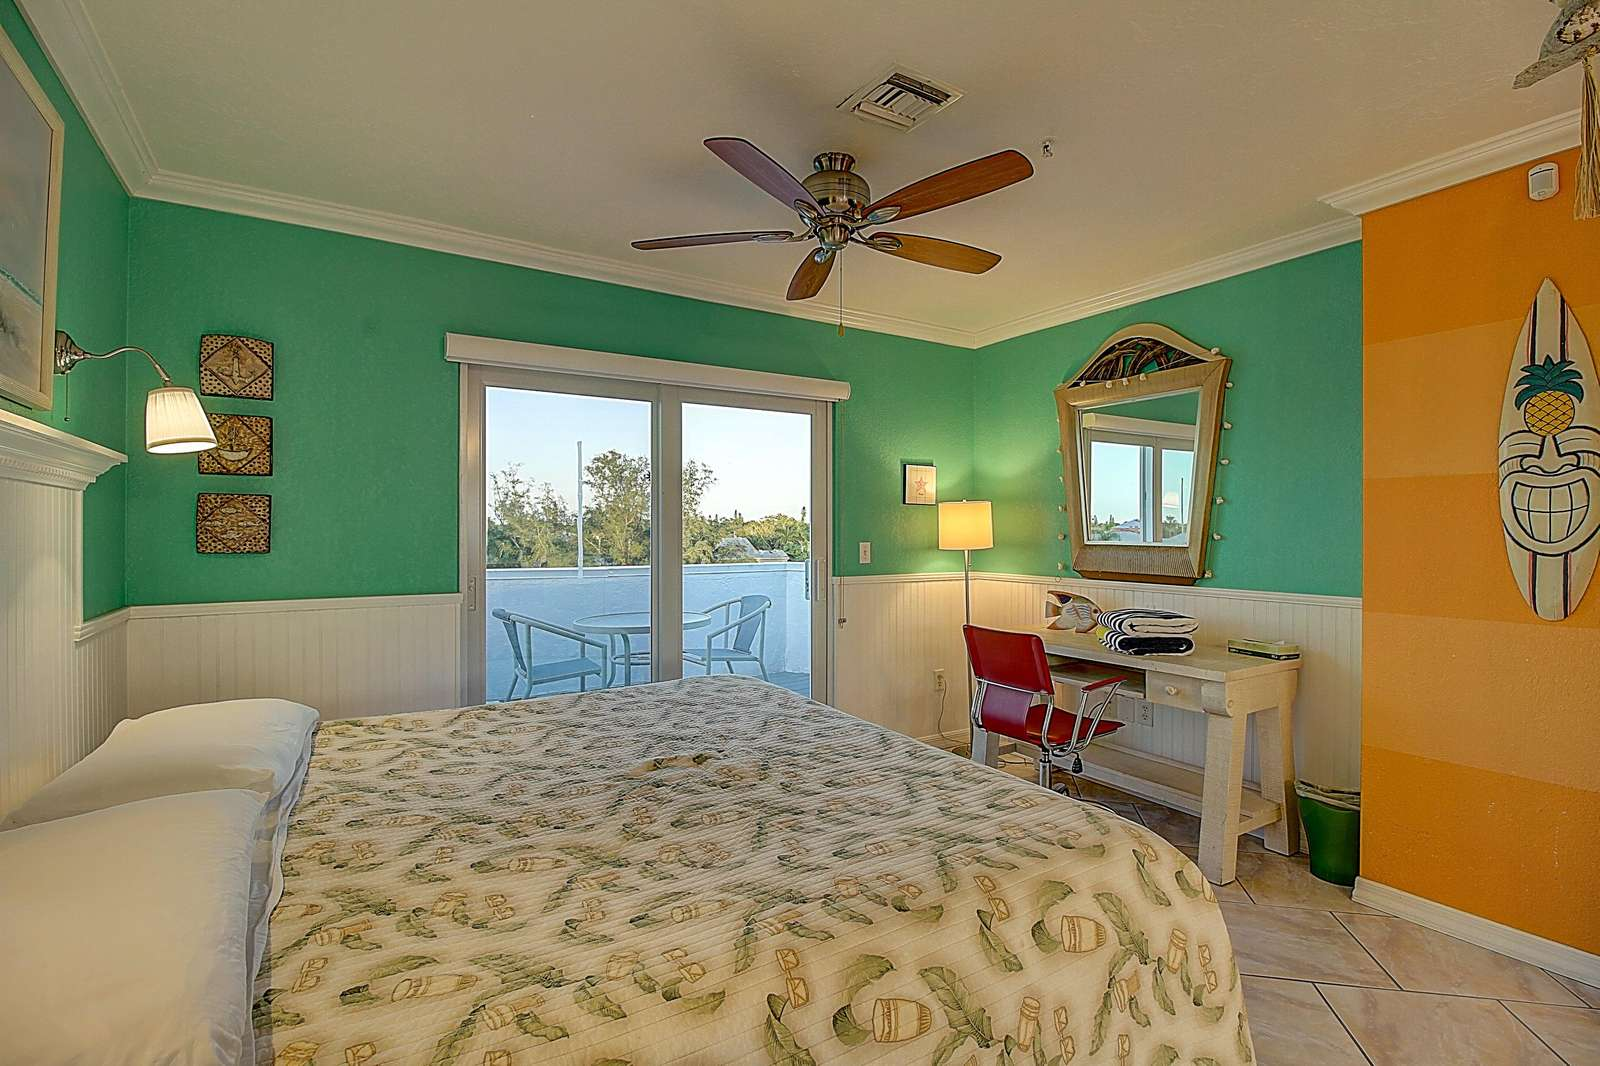 King-size bed and more - property